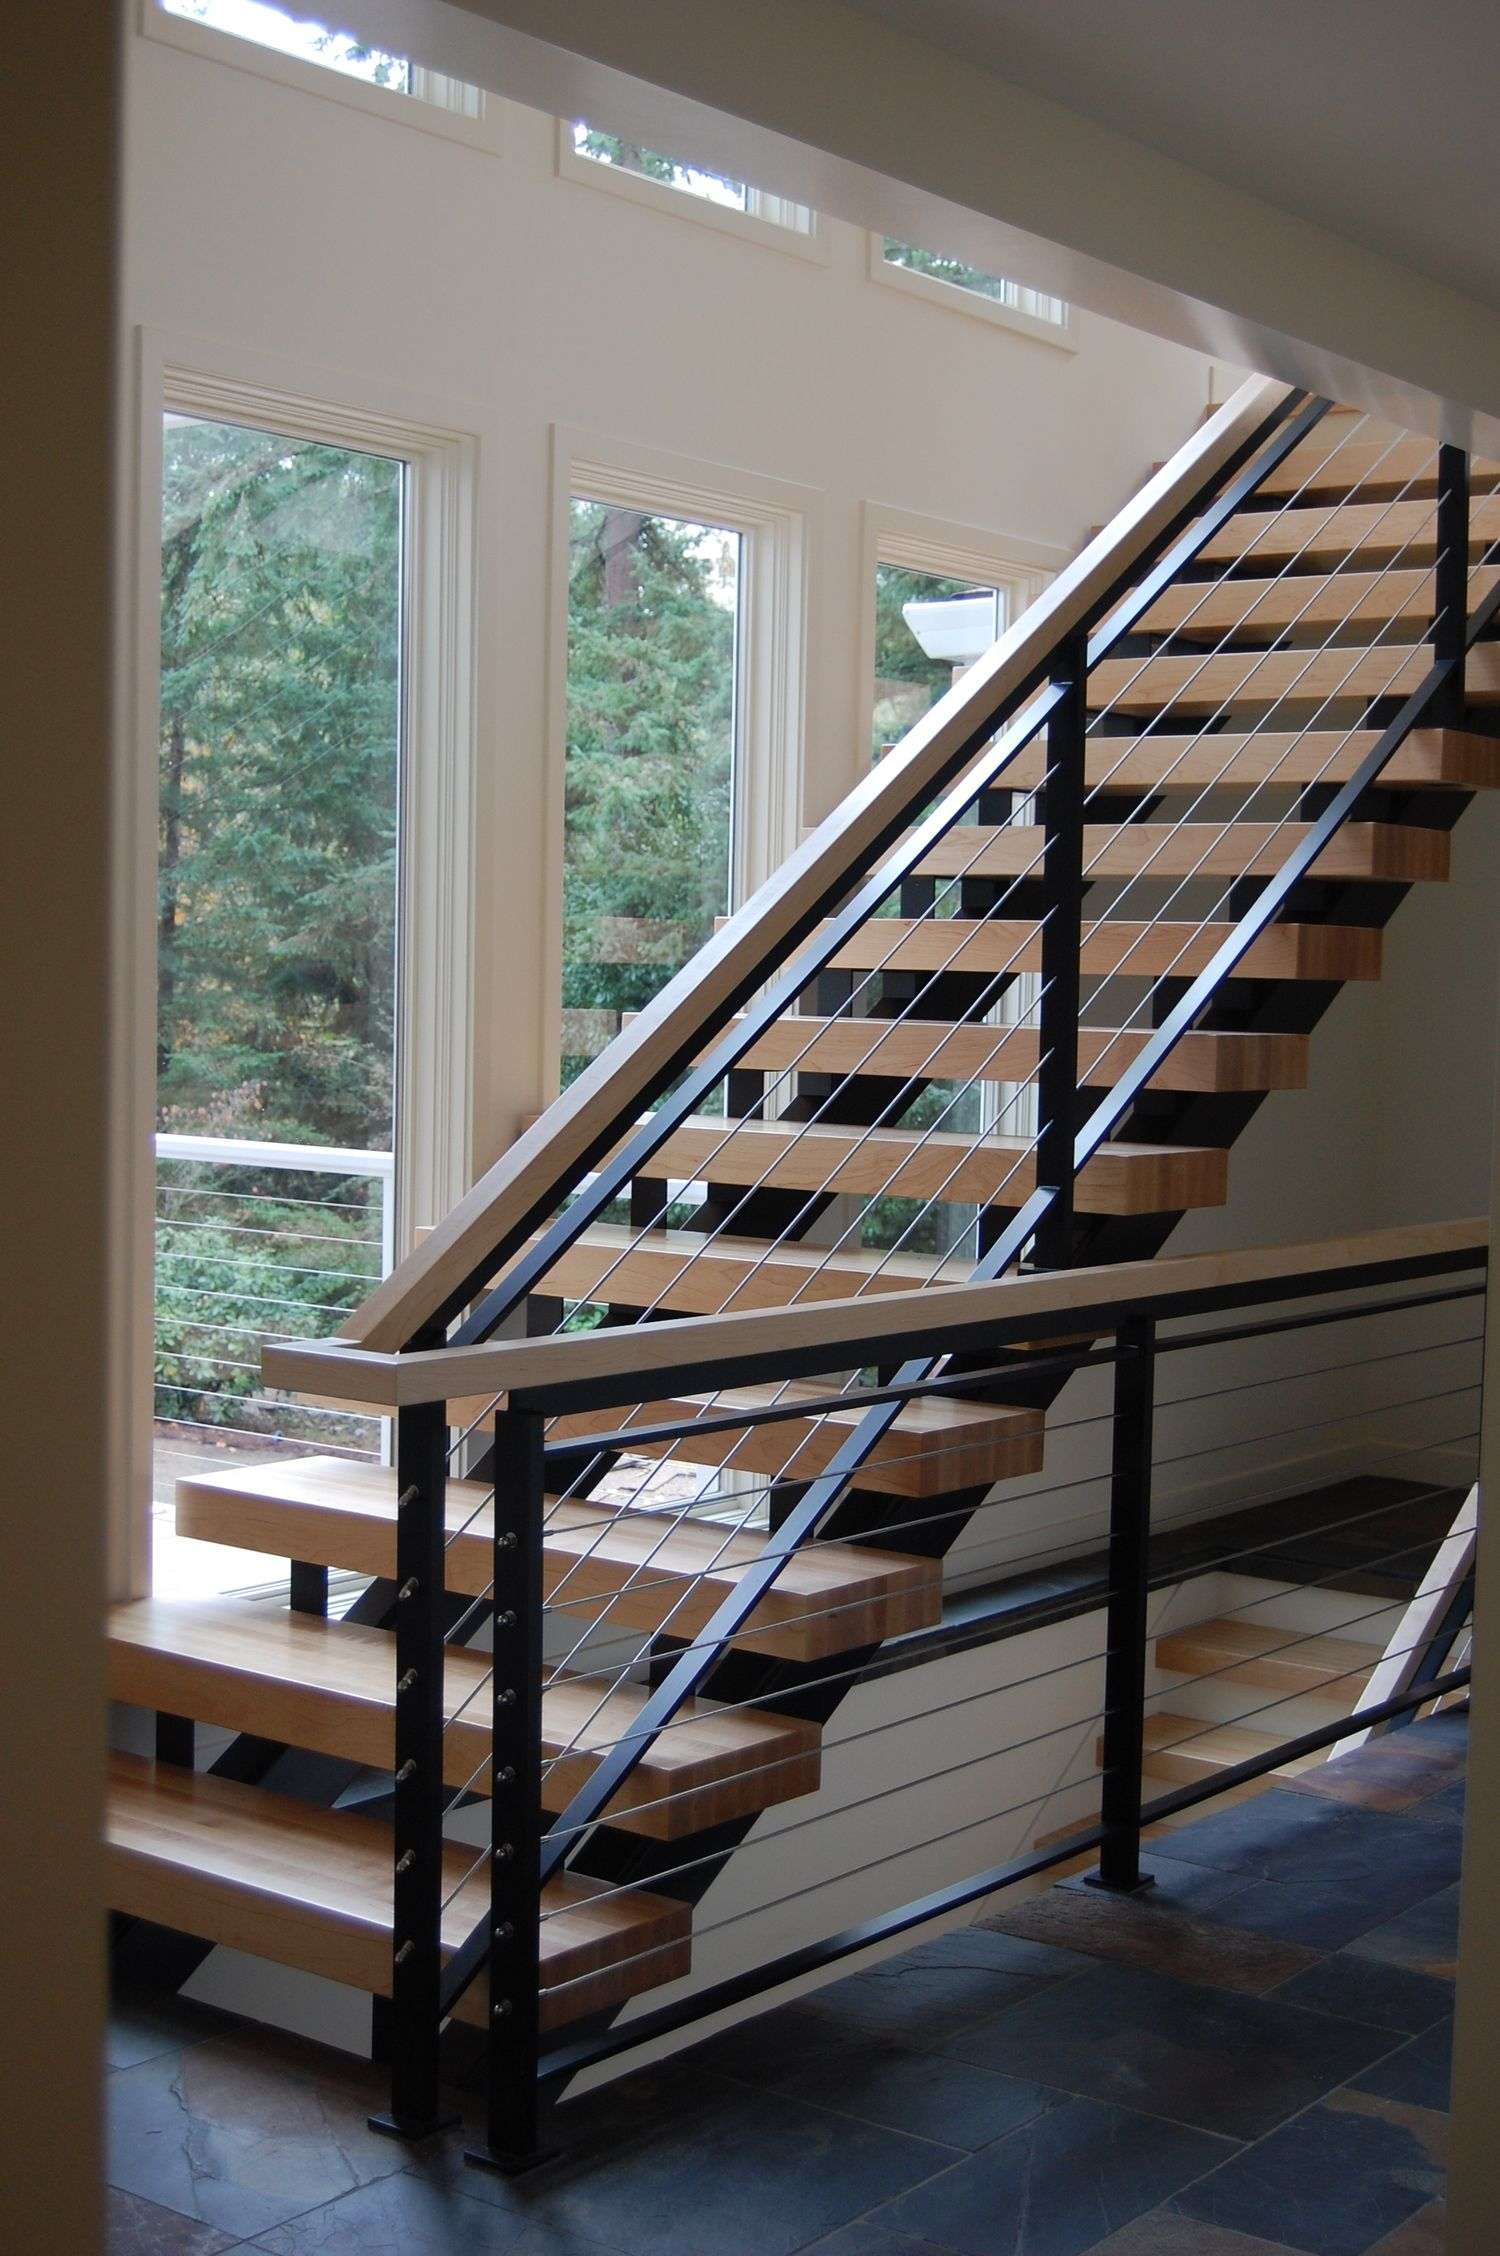 Best Painted Steel Staircase With 3 Floors Of Continuous Cable 400 x 300